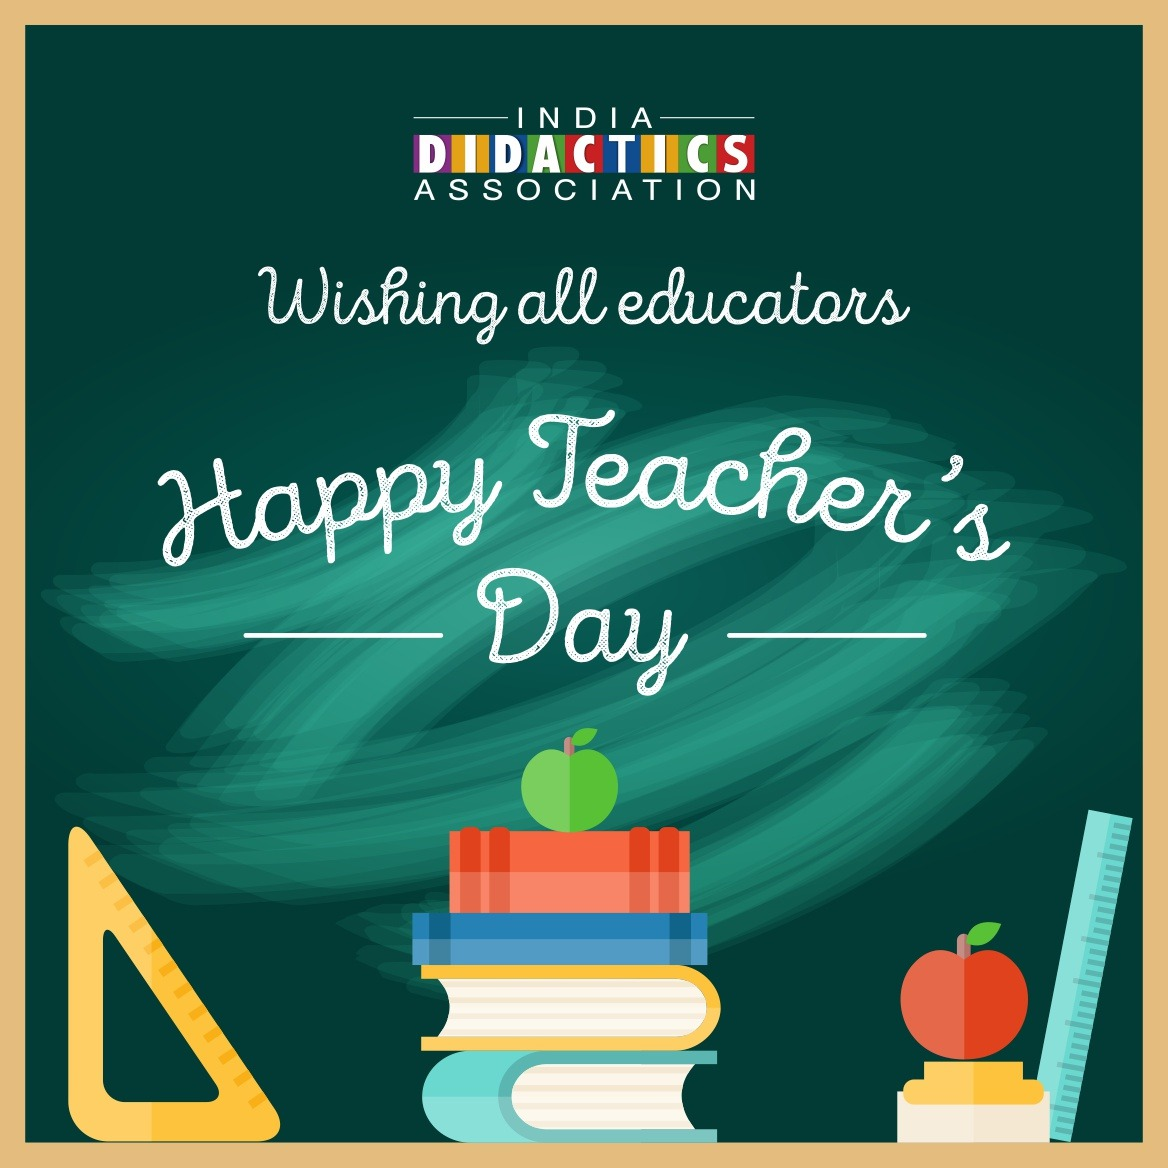 Happy Teachers Day - India Didactics Asscociation